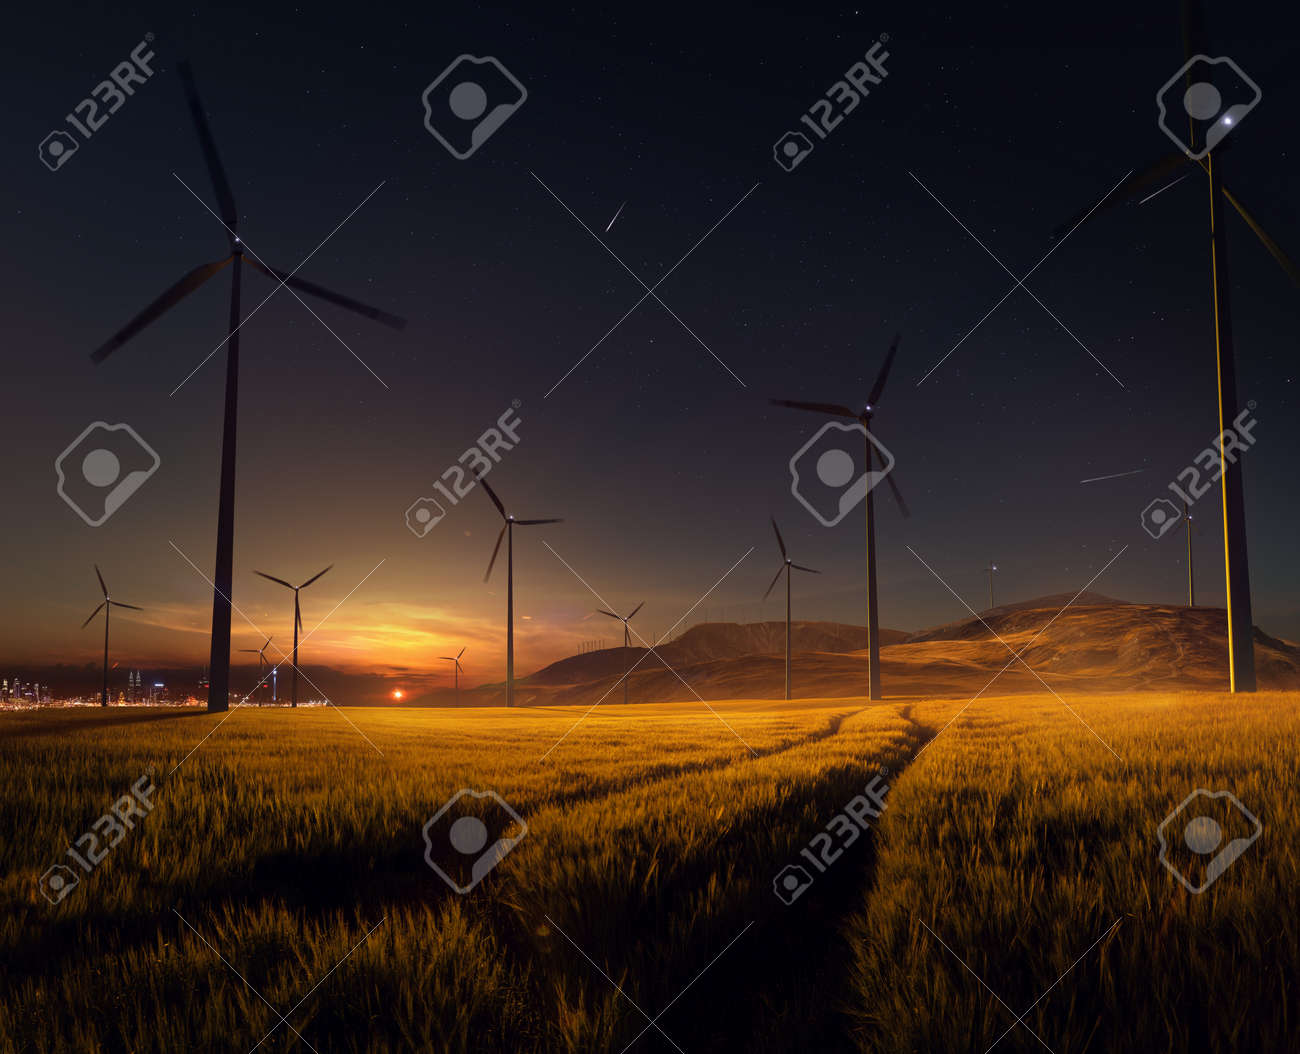 Beautiful sunset field with wind mill generators. big city in background - 158478009